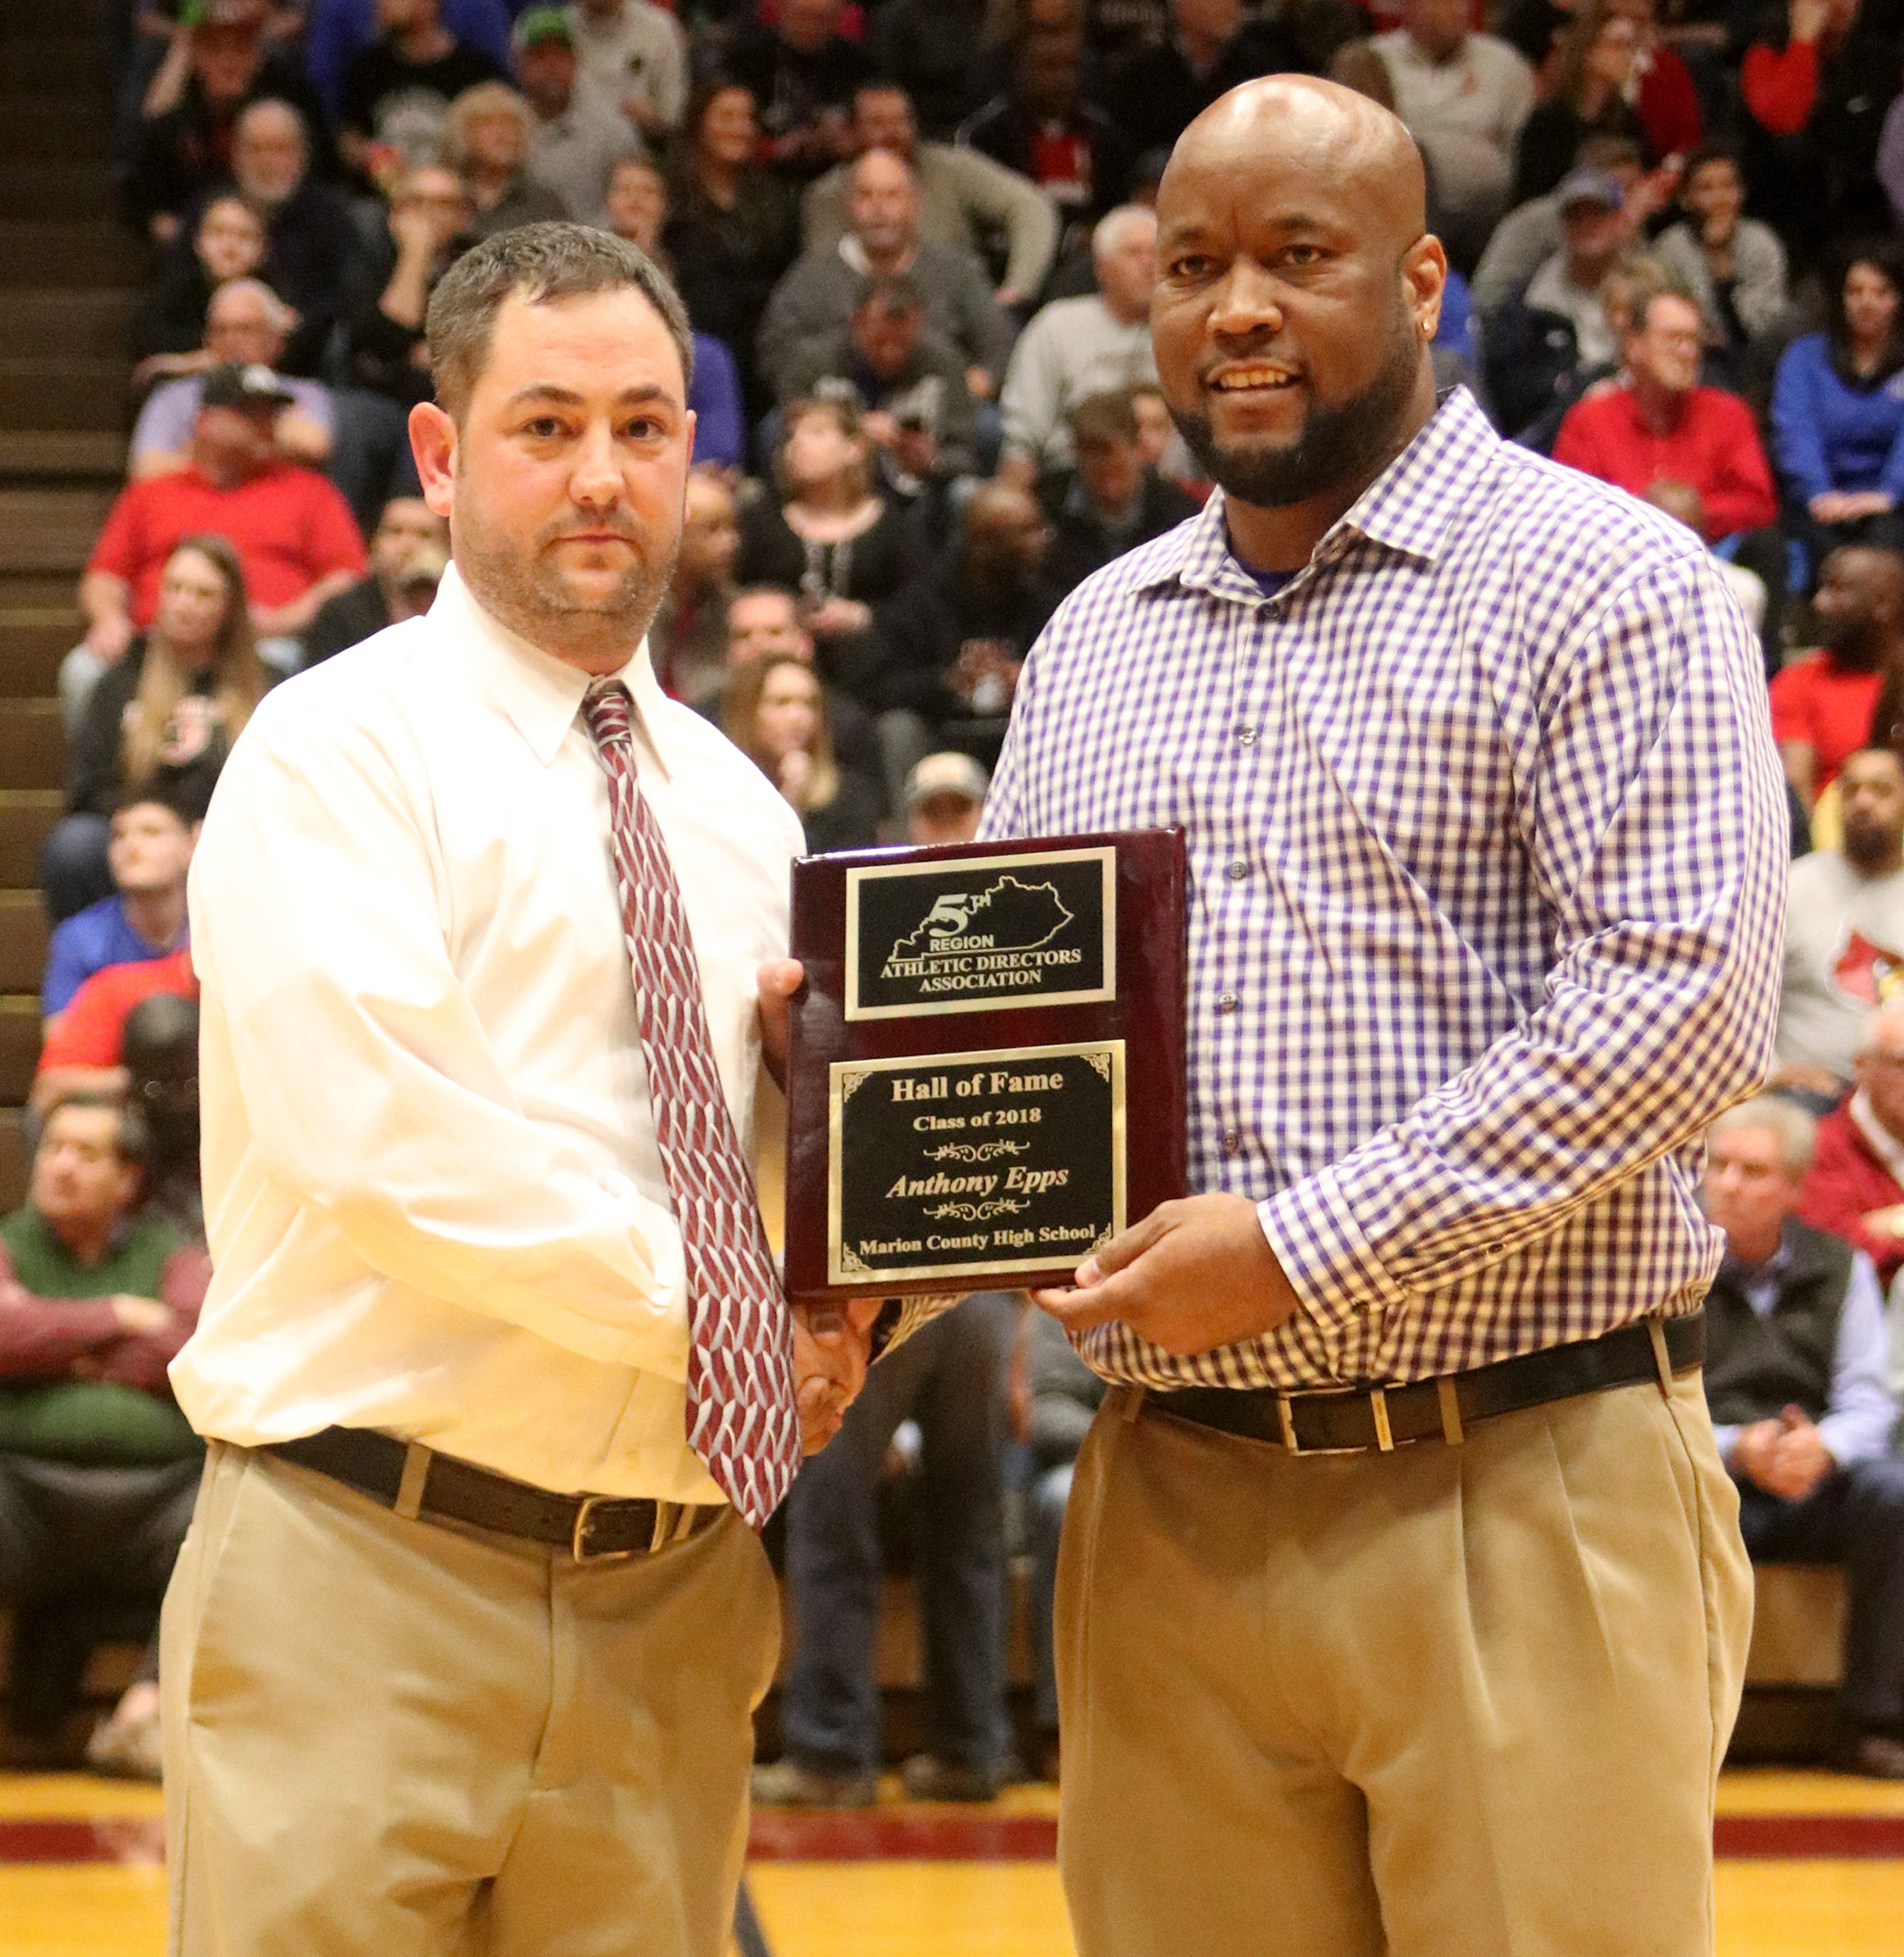 CHS girls' basketball head coach Anthony Epps, at right, was induced into the 5th Region Athletic Director's Hall of Fame in a special ceremony at Marion County High School on Tuesday, March 6. Michael Holt, athletic director at Marion County, made the presentation.